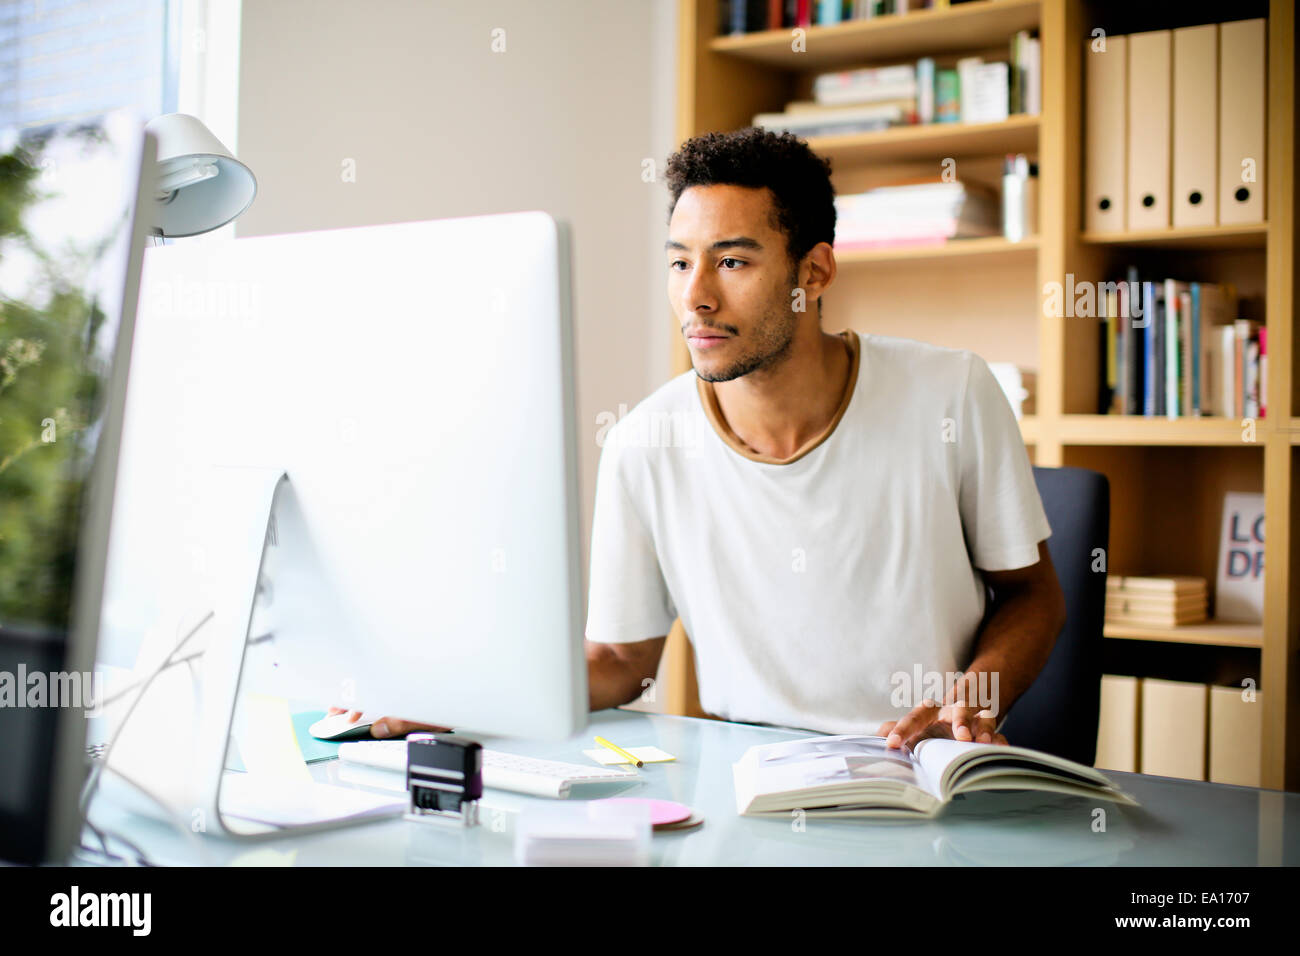 Graphic designer using computer at work - Stock Image